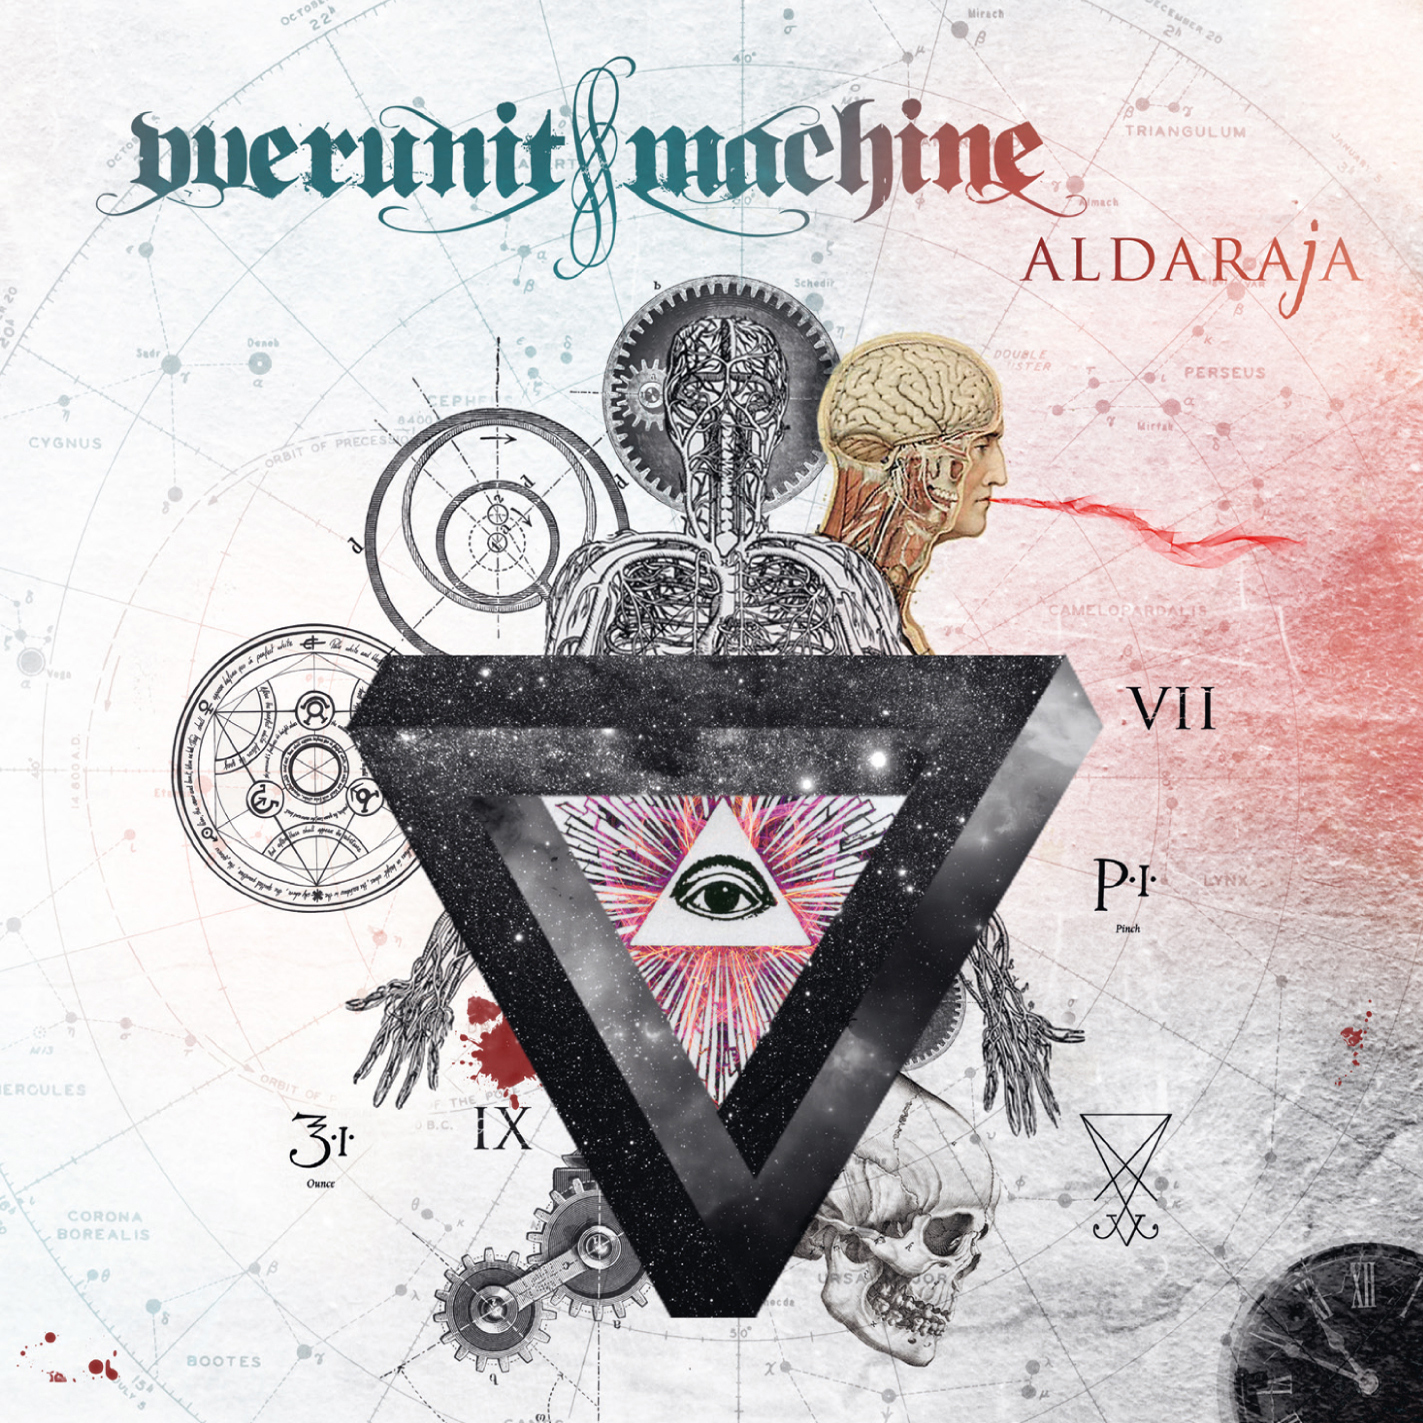 Overunit Machine: Aldaraja